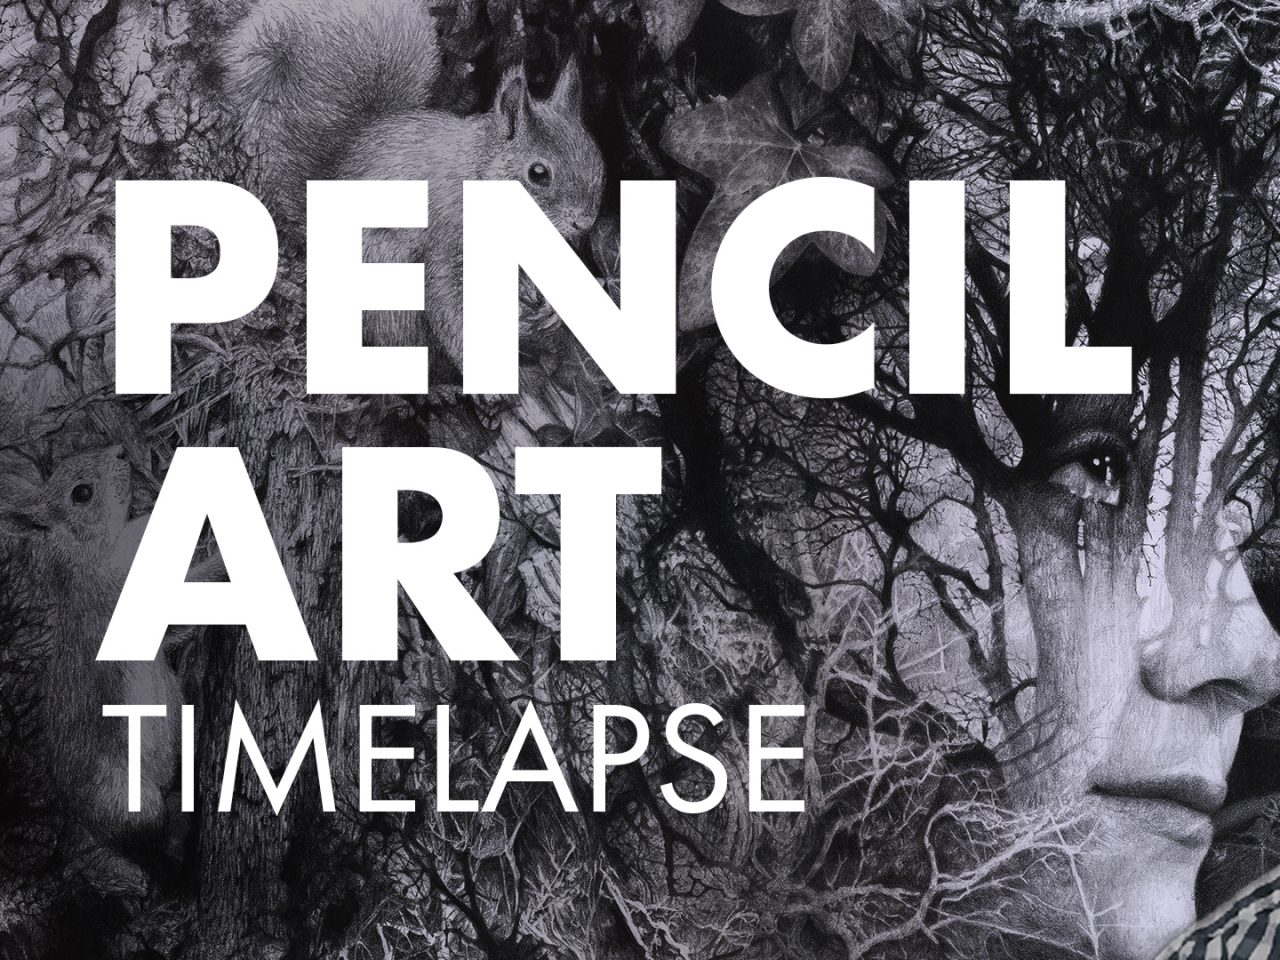 Pencil Art Timelapse Looking Through Brett MIley Art